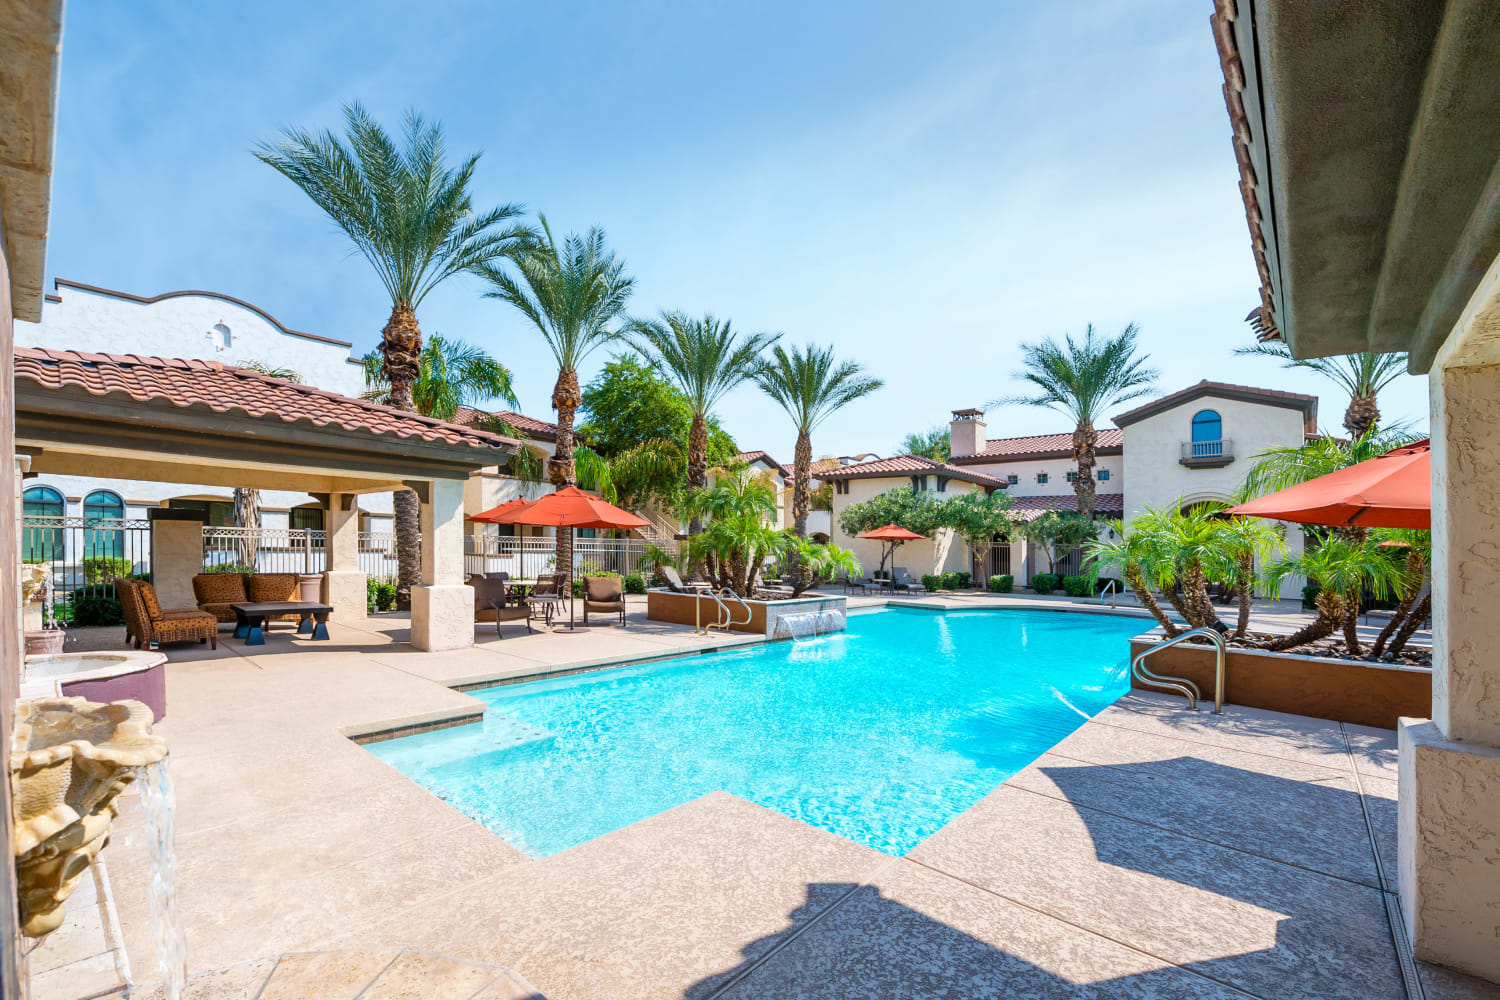 Enjoy apartments with a swimming pool at Dobson 2222 in Chandler, Arizona